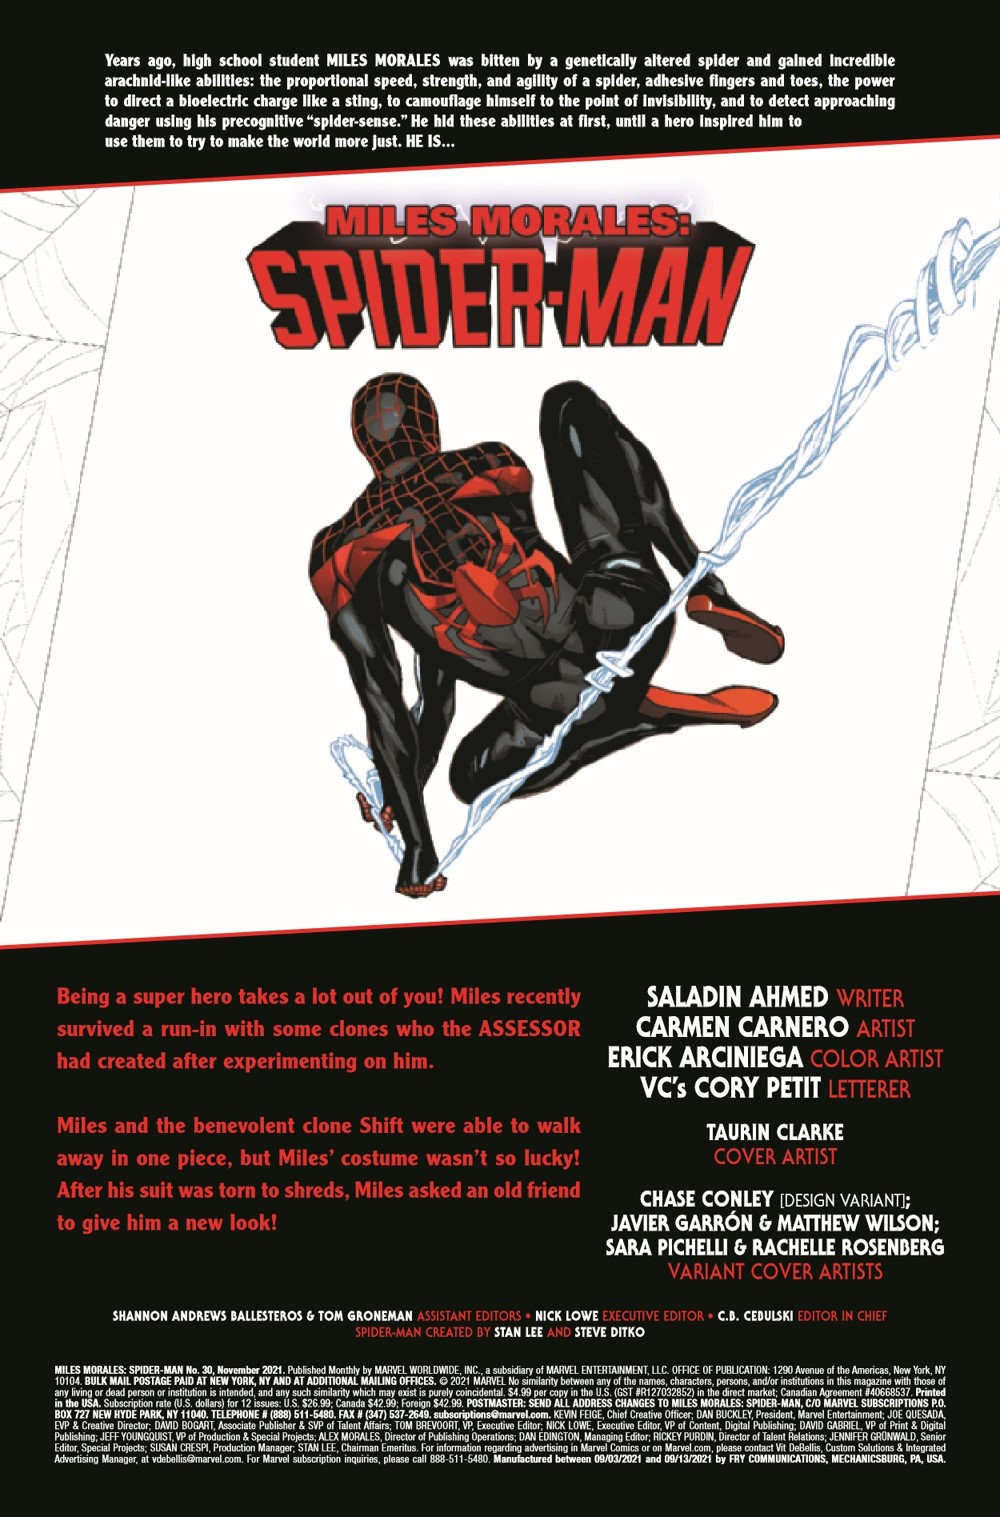 MMSM2018030_Preview-2 ComicList Previews: MILES MORALES SPIDER-MAN #30